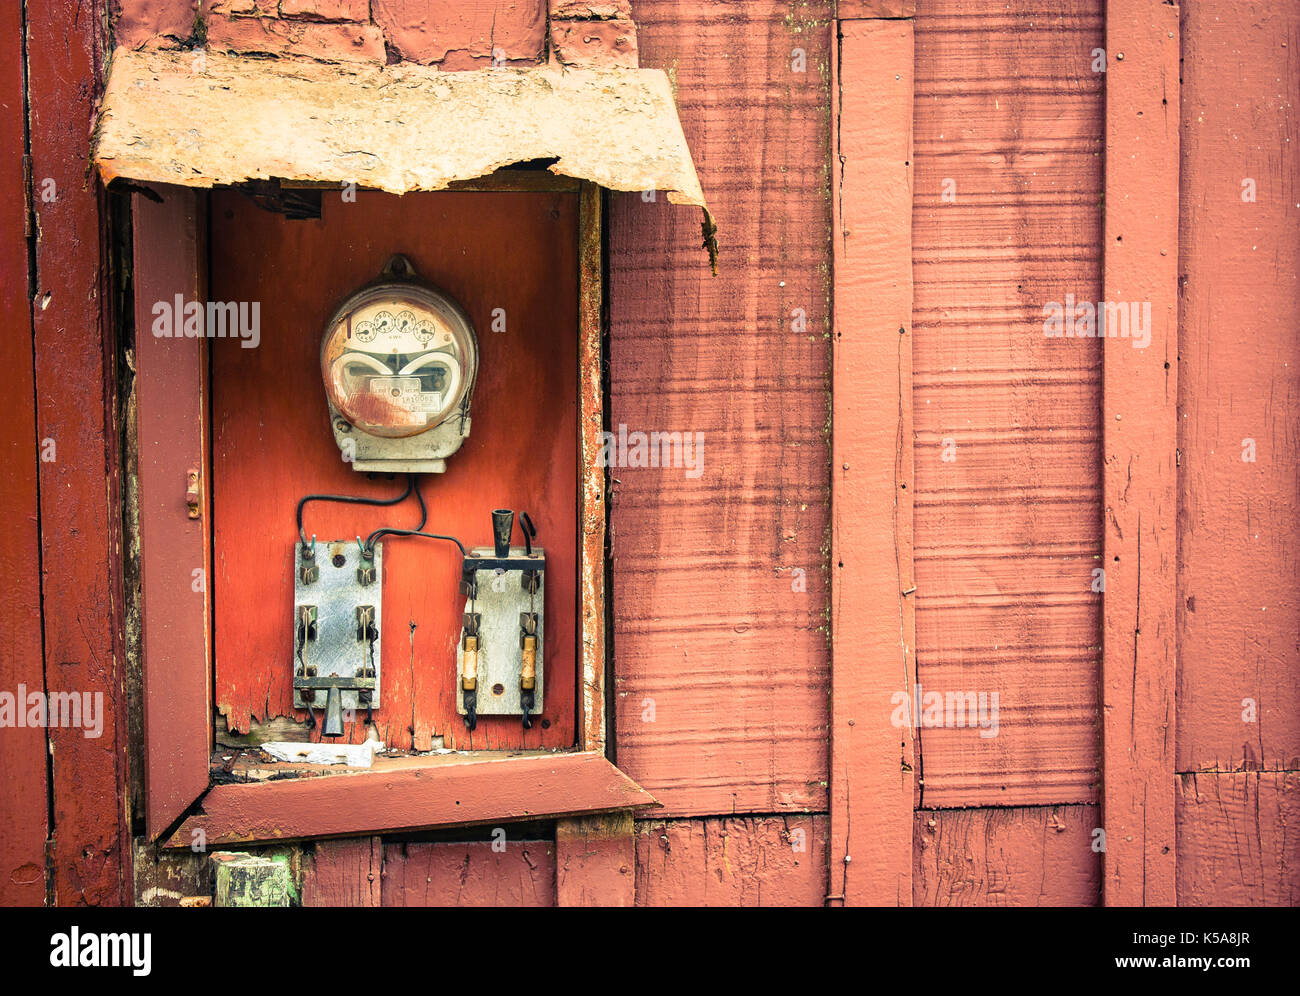 Old vintage and rusted analog electricity meter counter used for measurements in kWh of electricity usage with two switches on a red cracked and peeli - Stock Image